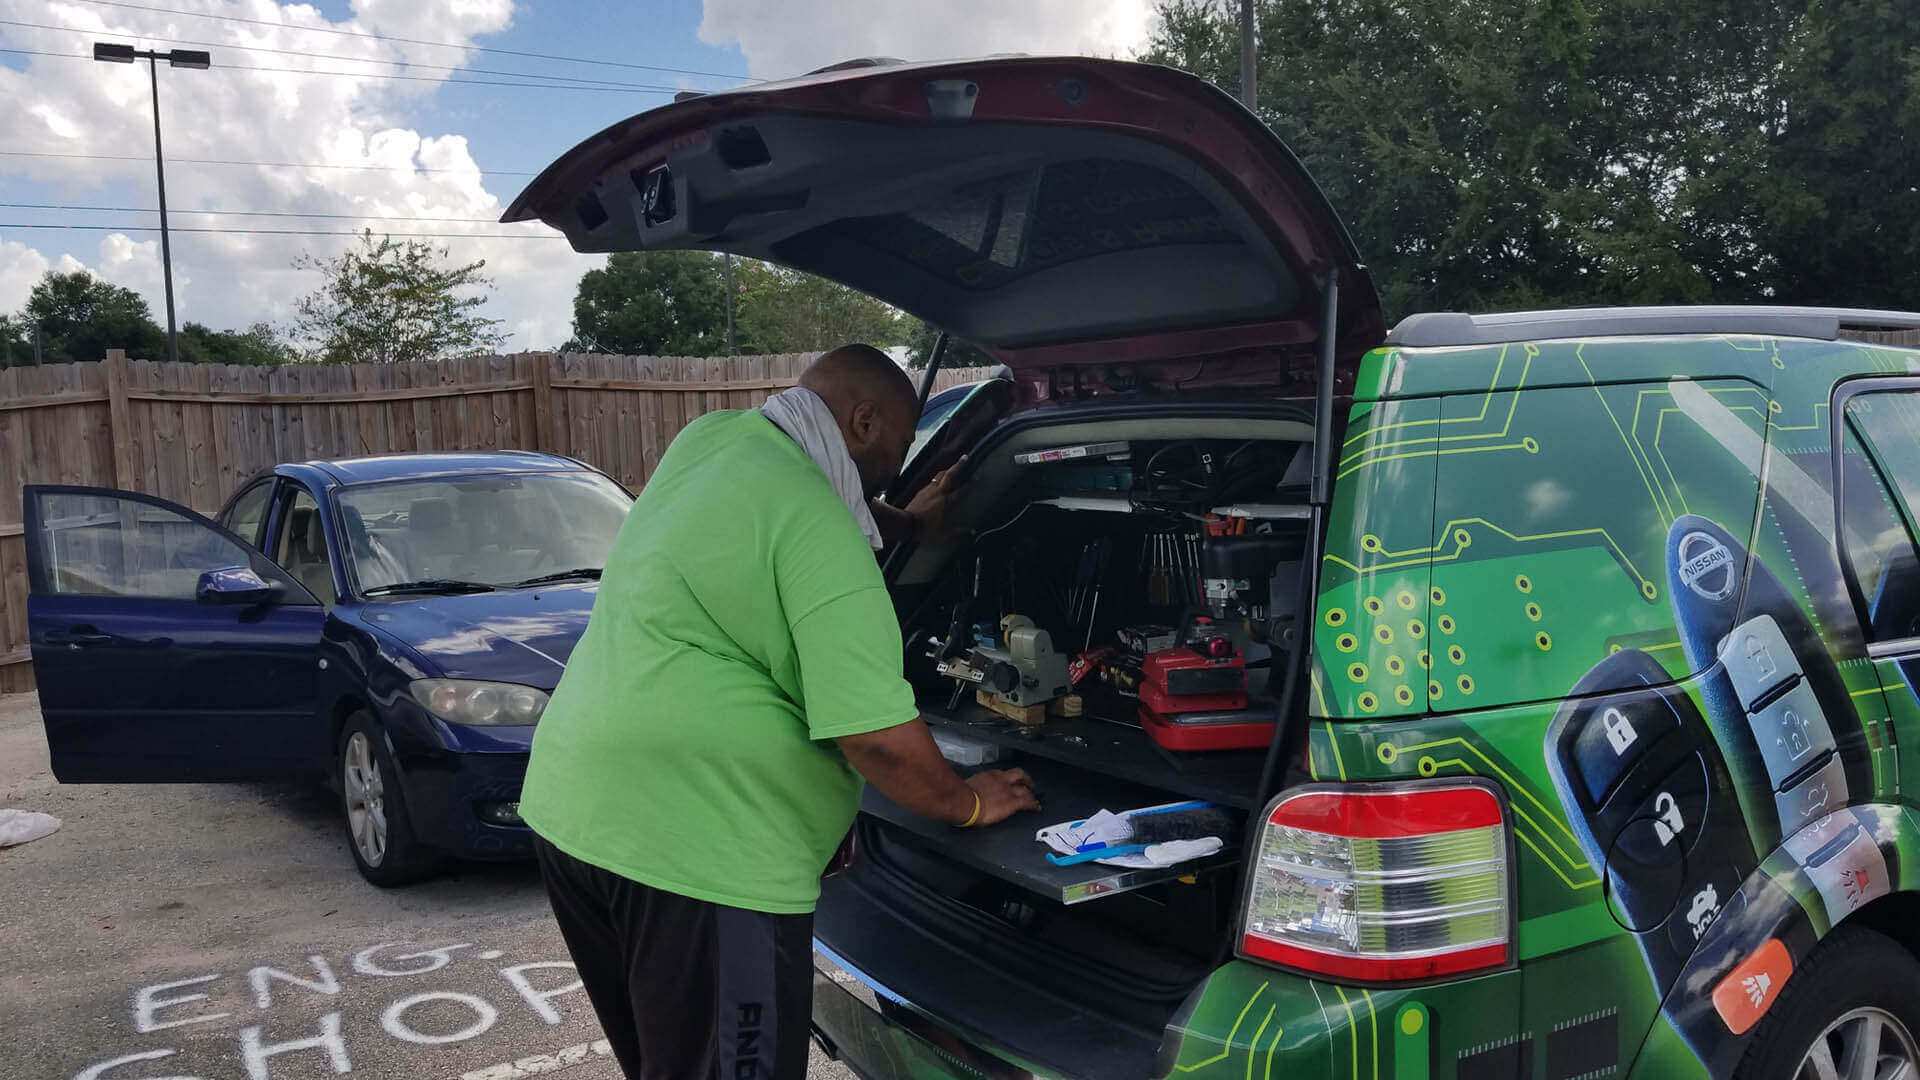 Locksmith working on a vehicle keys and lock